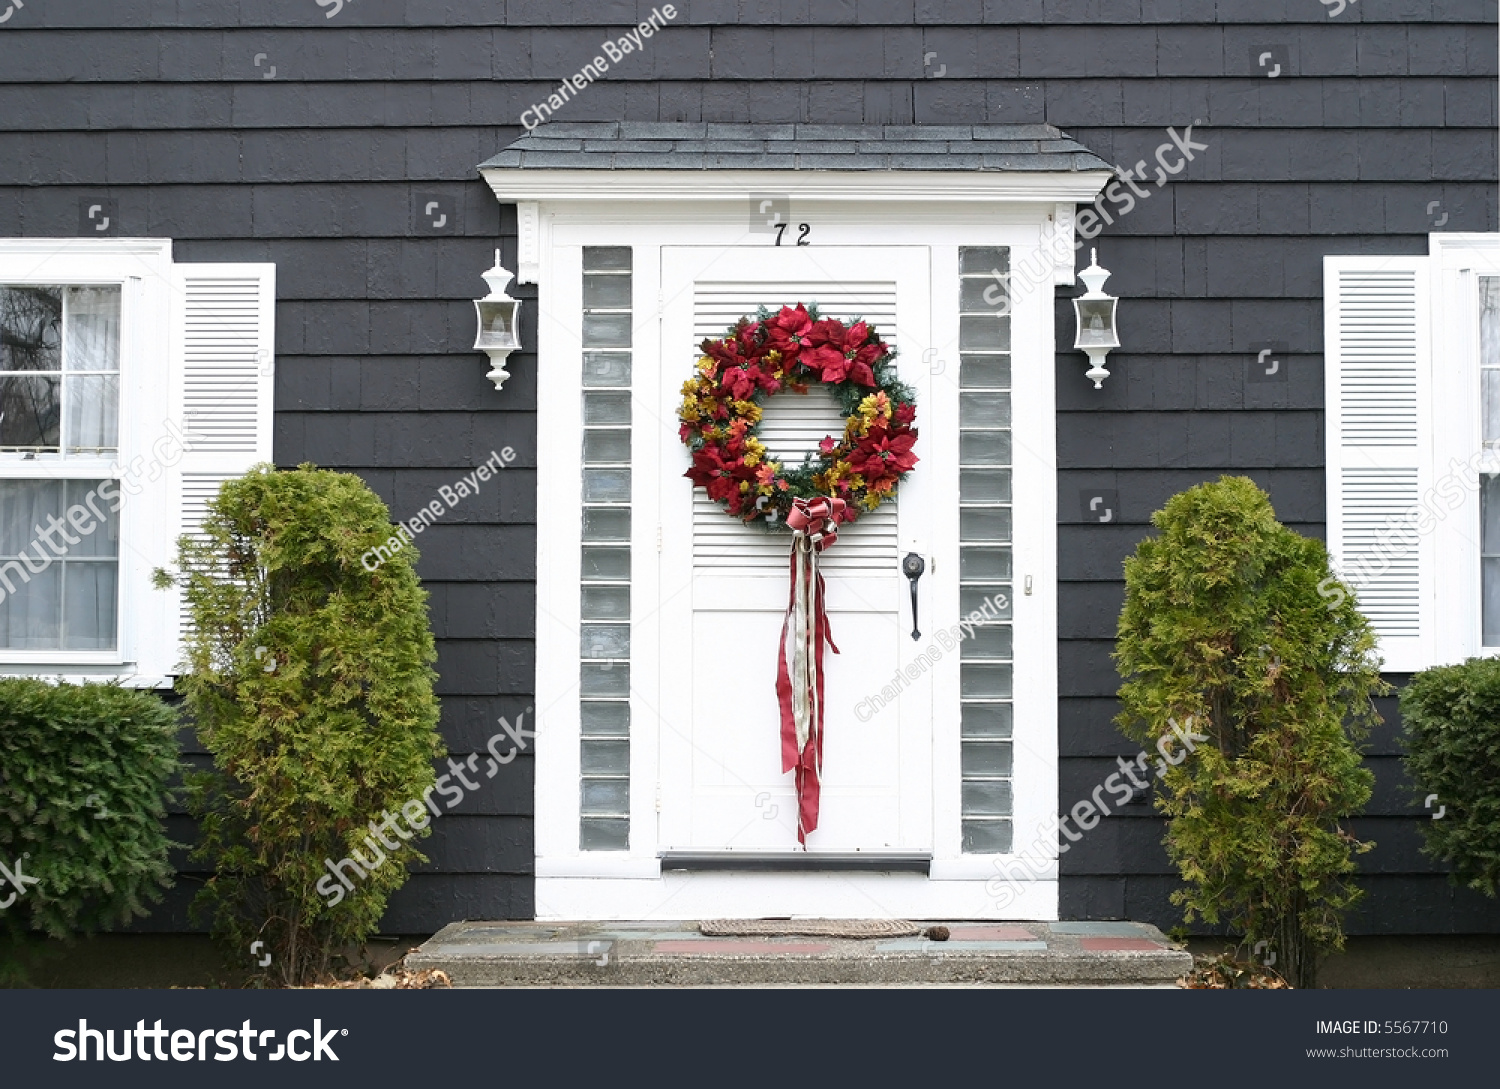 Front door christmas wreaths - Christmas Wreath On Front Door